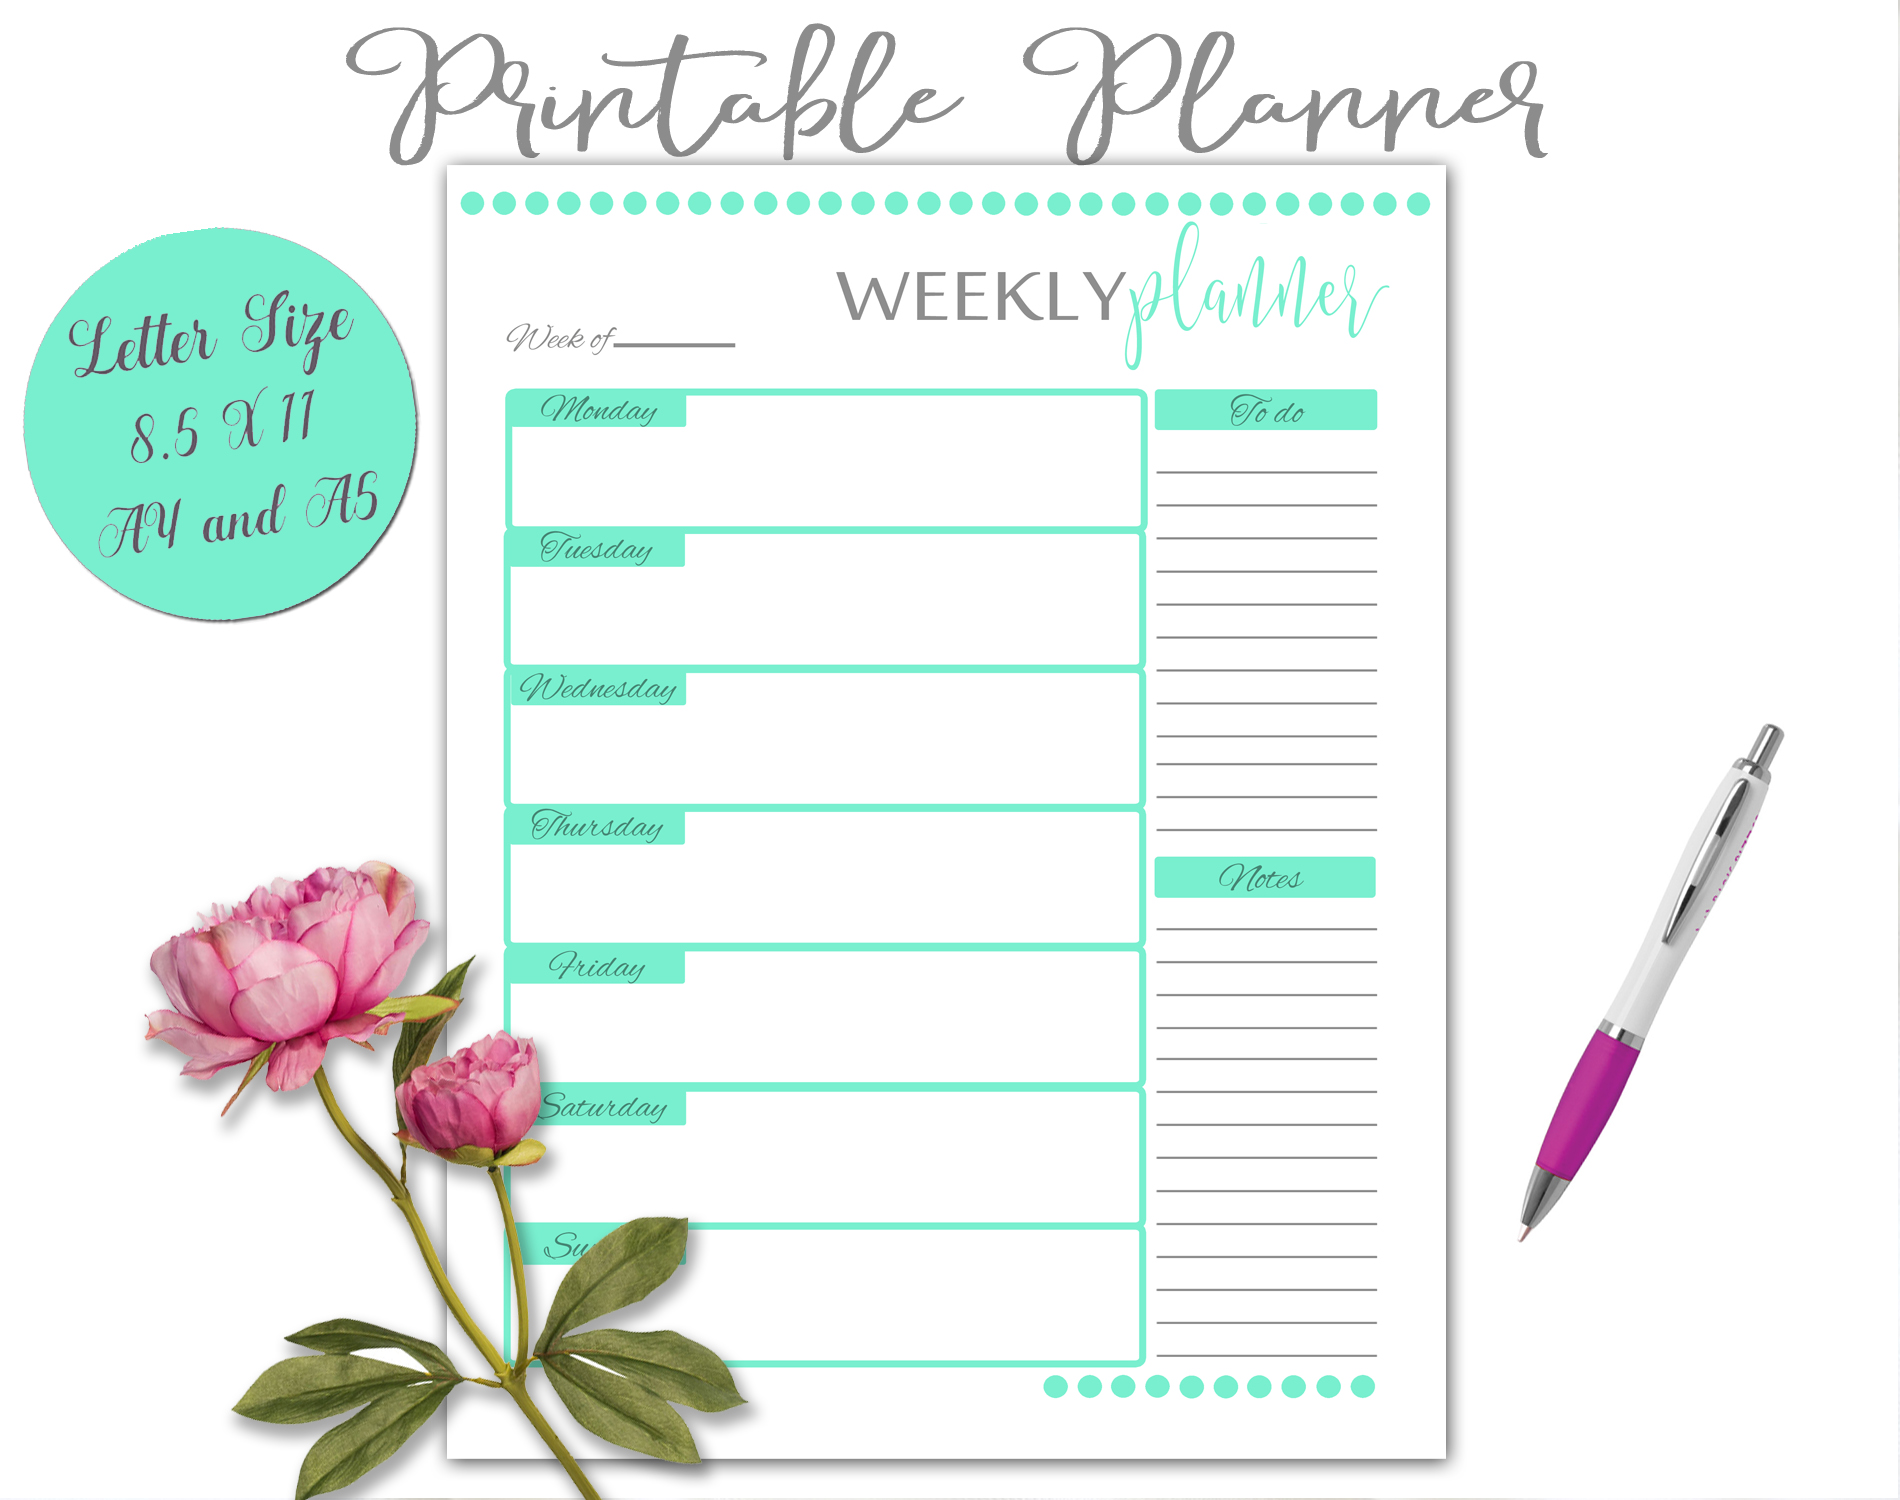 Printable Daily Weekly Monthly Planner Sheets example image 12